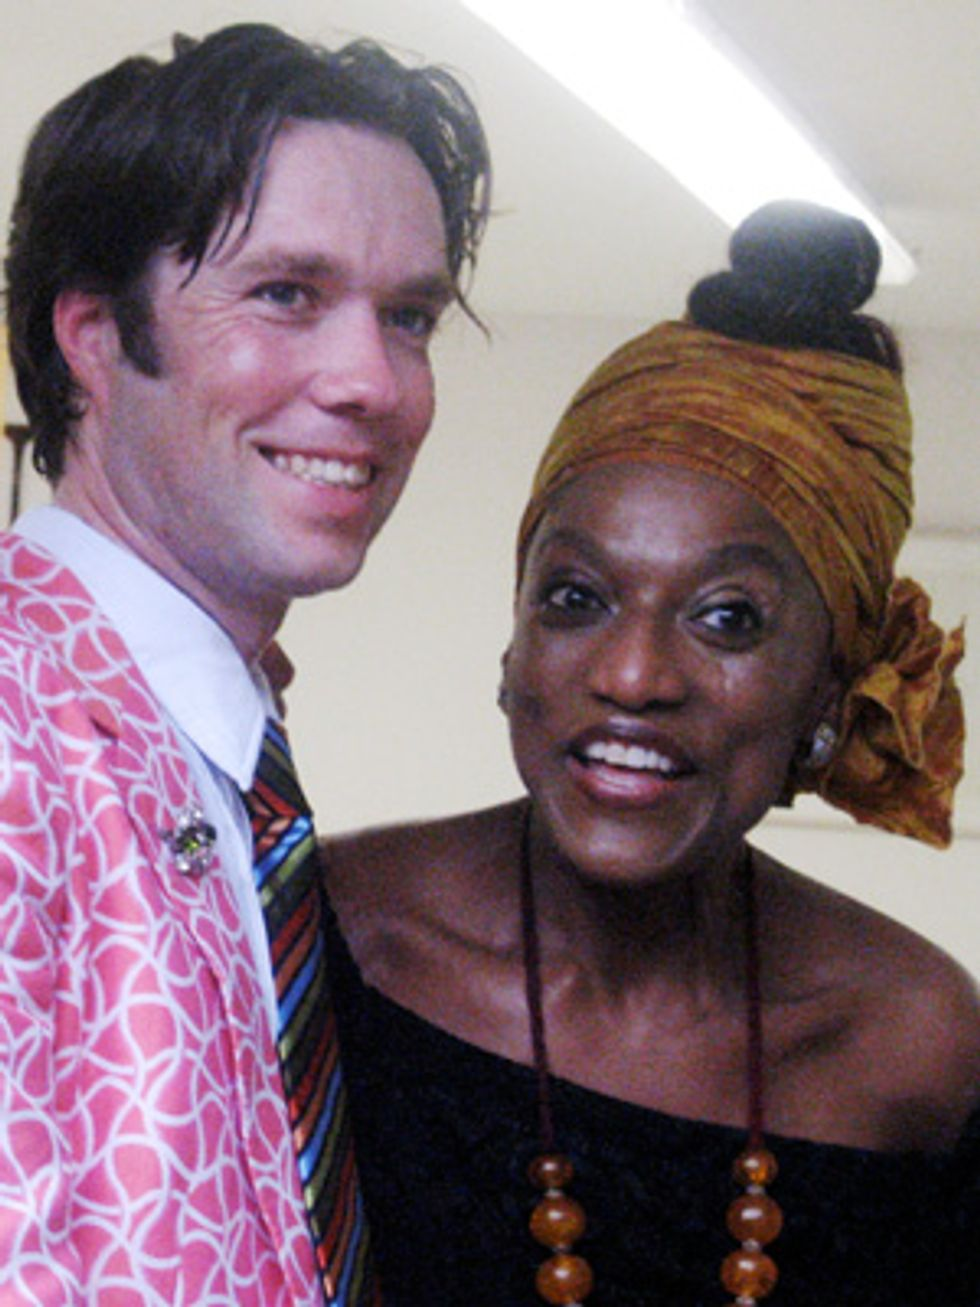 About Last Weekend... The Watermill Concert 2008: Last Song of Summer with Rufus Wainwright